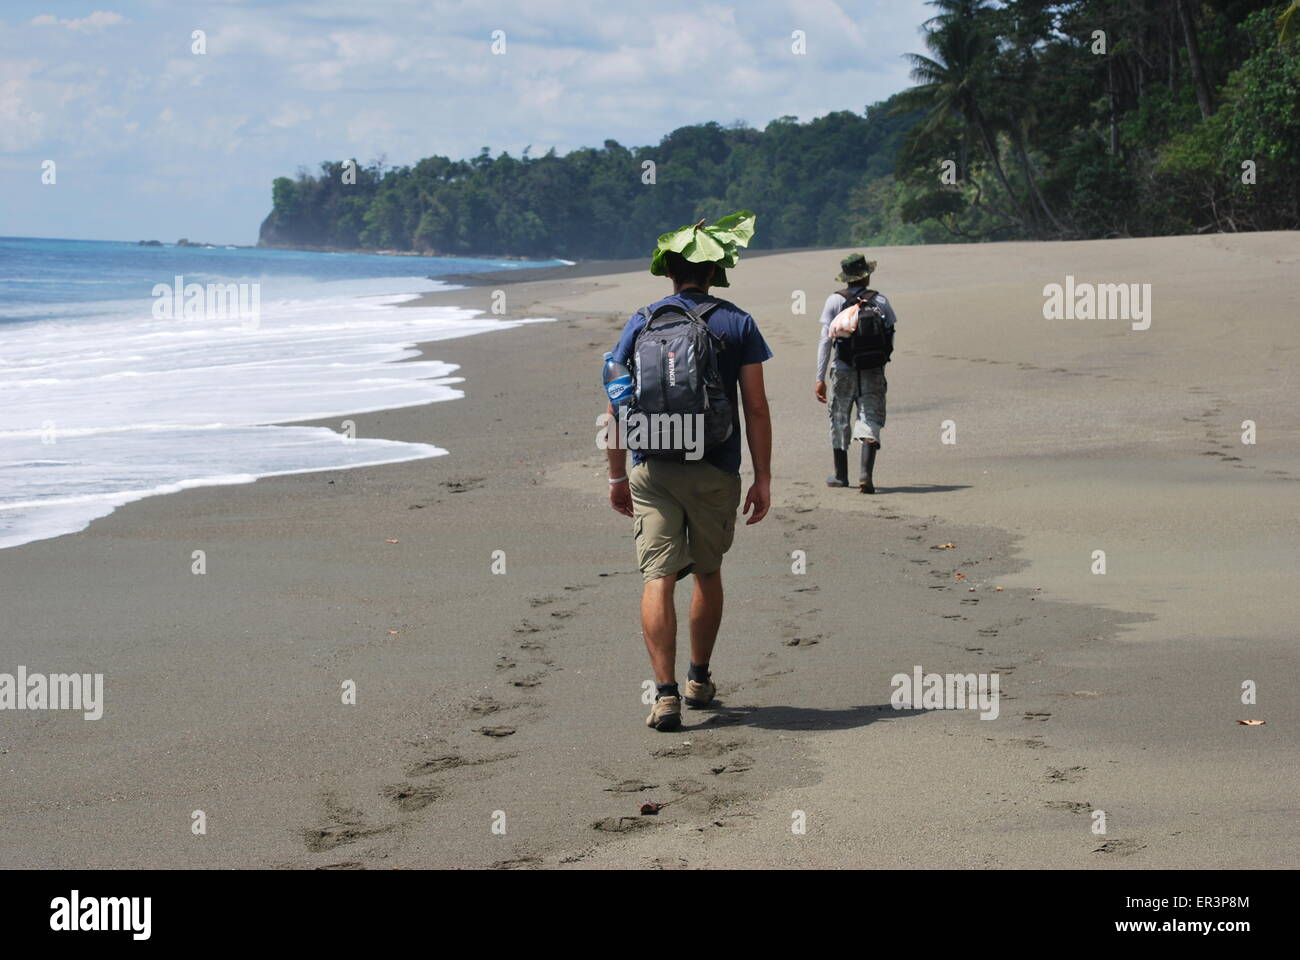 Trekking along the beach in the Corcovado National Park, Costa Rica - Stock Image